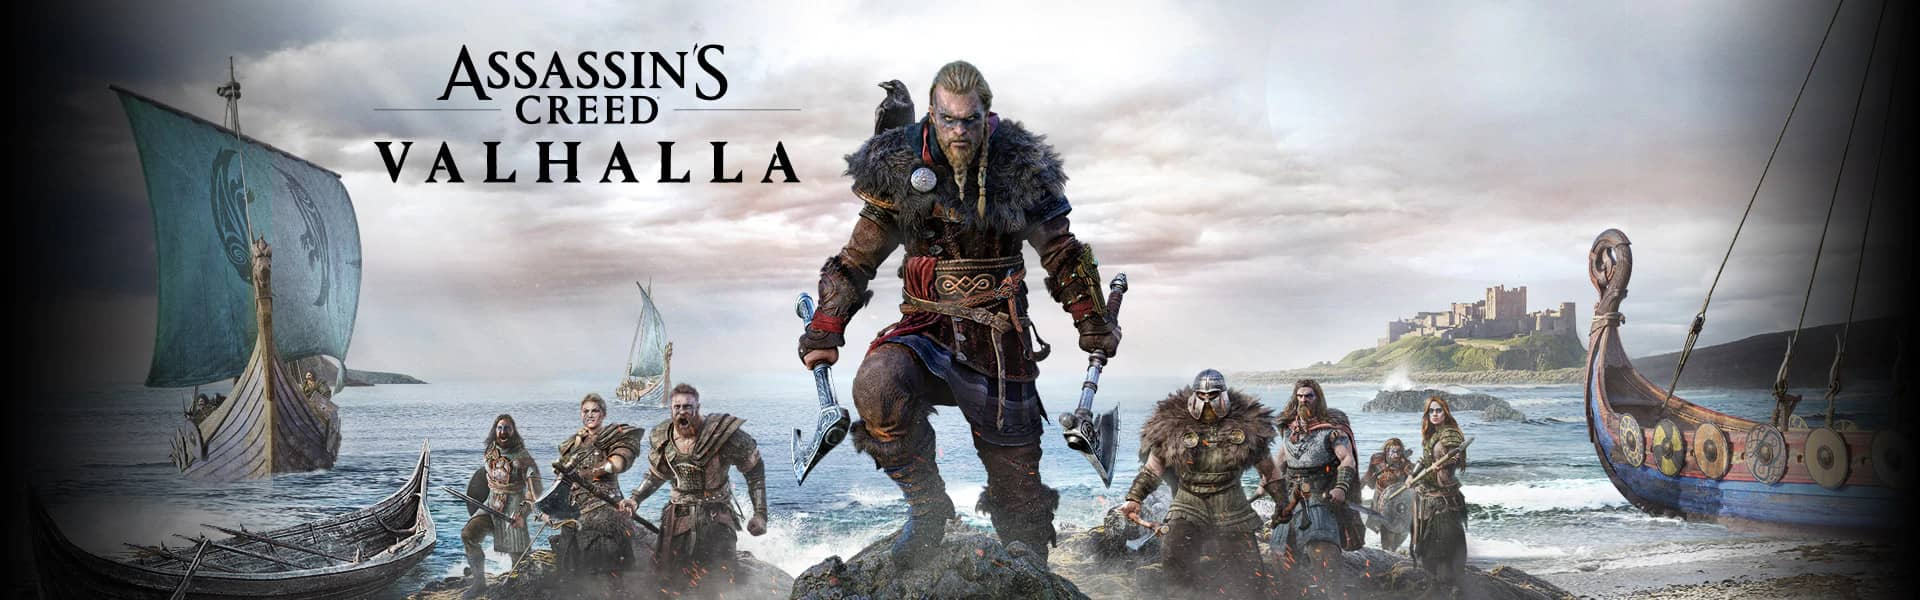 Bundle Assassins Creed Valhalla k procesorům AMD Ryzen